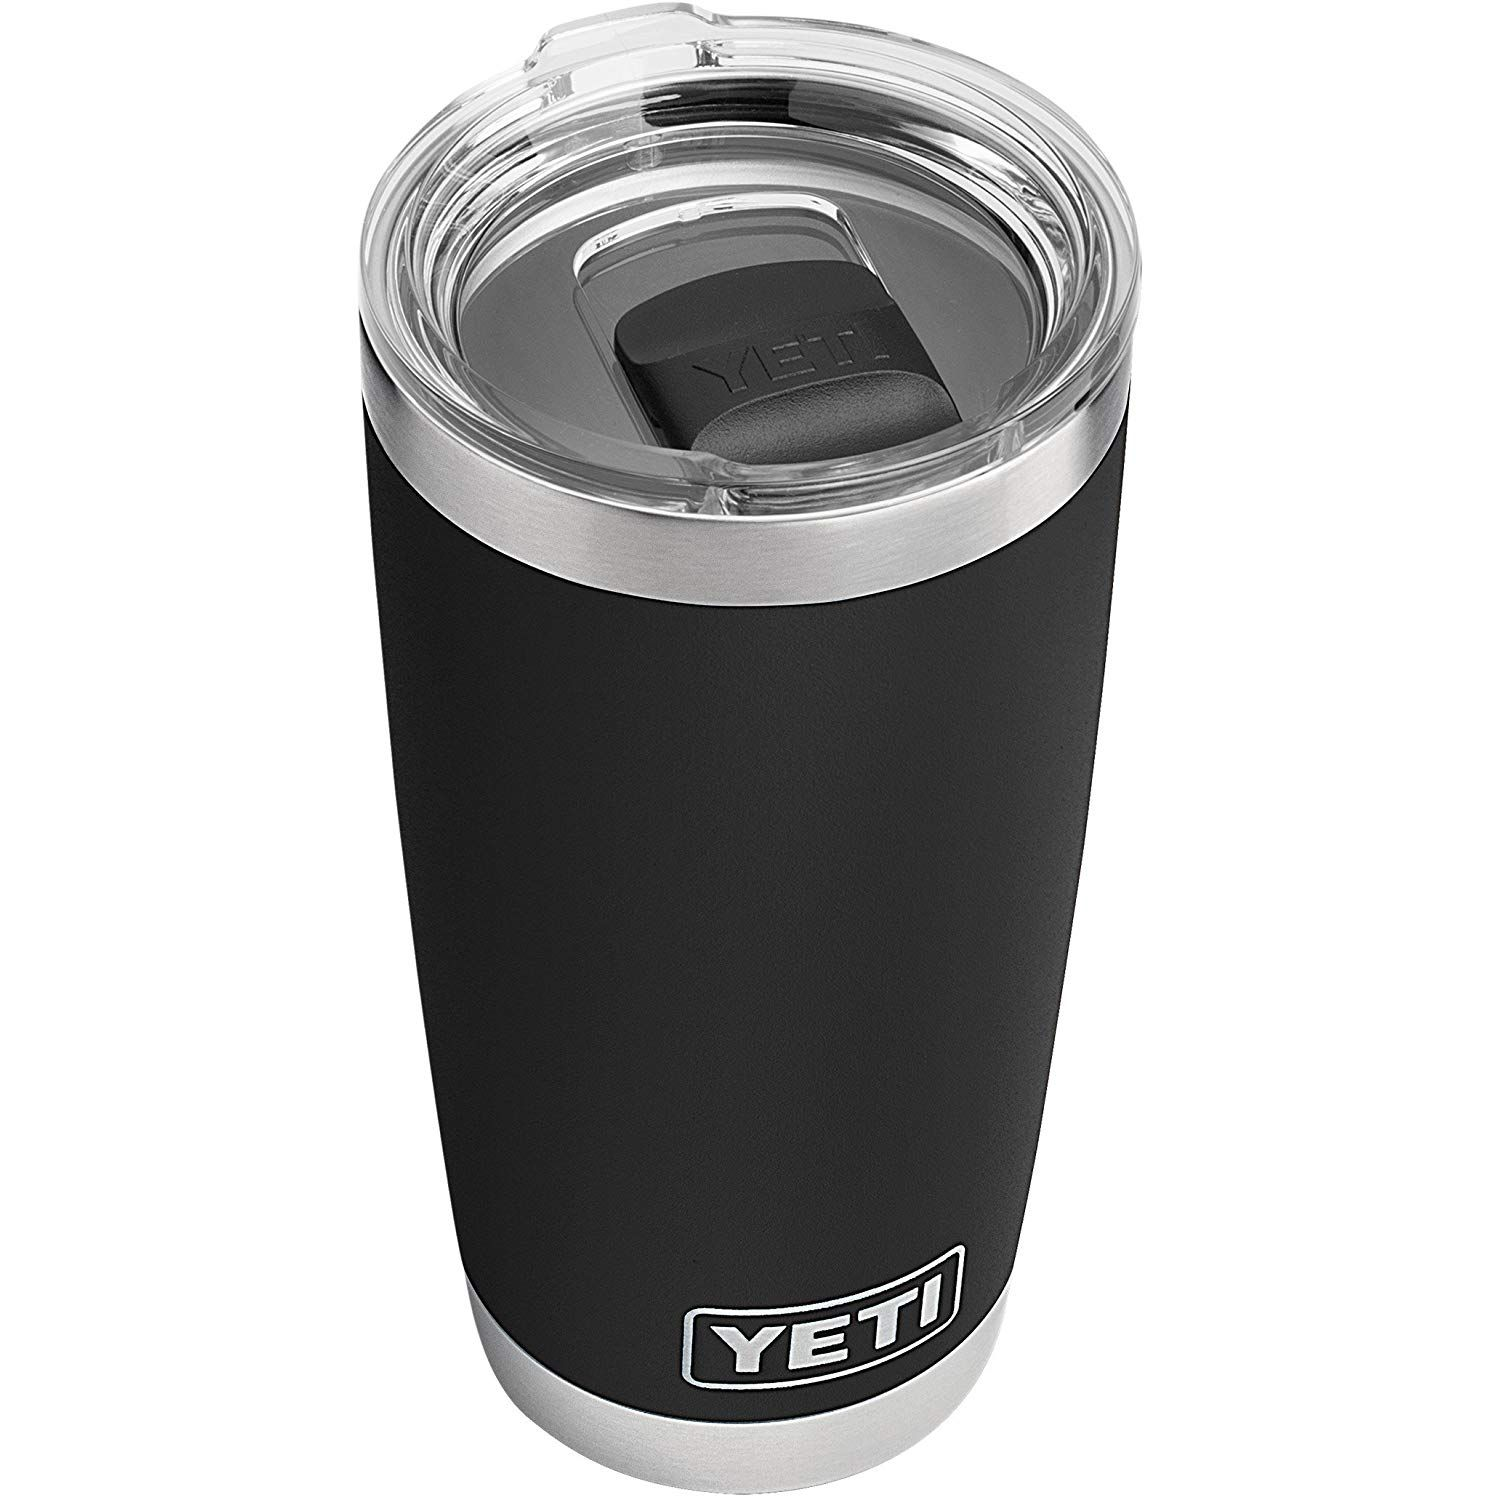 YETI Rambler 20 oz Stainless Steel Vacuum Insulated